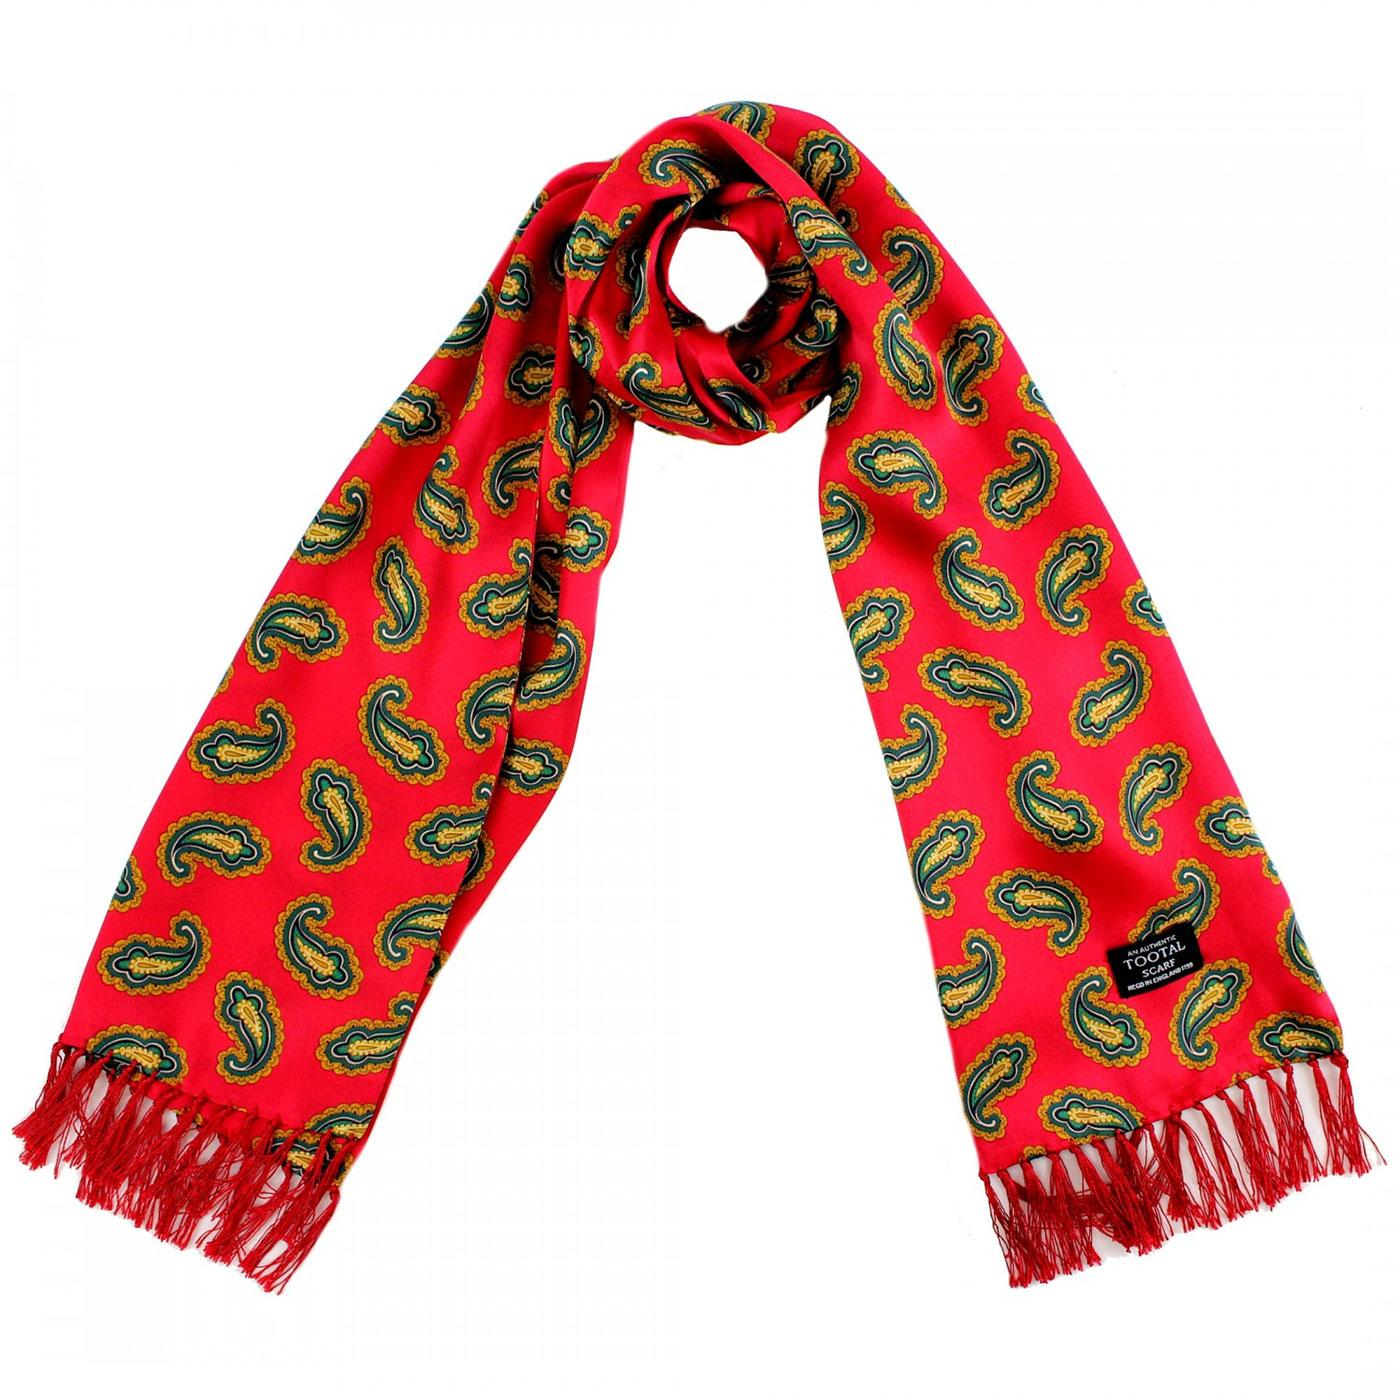 TOOTAL Retro Mod Bold Paisley Silk Scarf RED